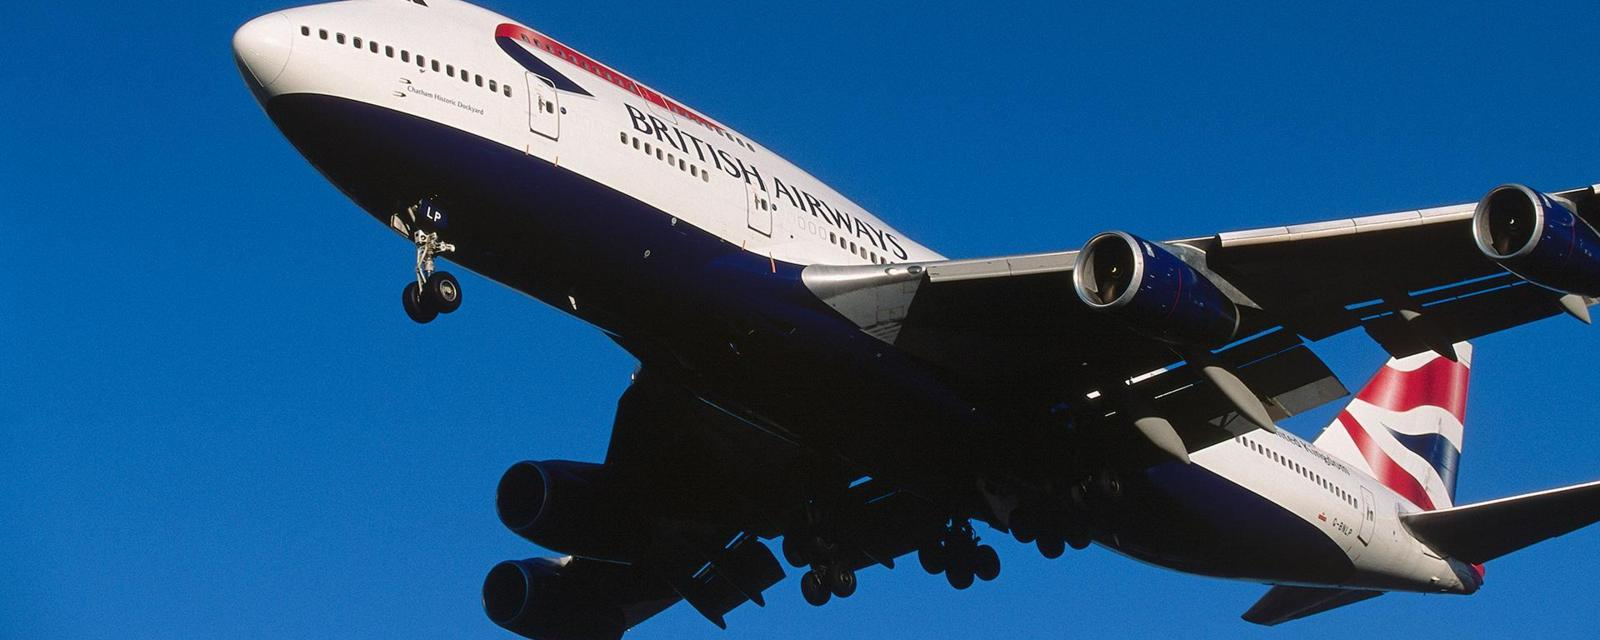 The Boeing 747: The Plane that shrank the world